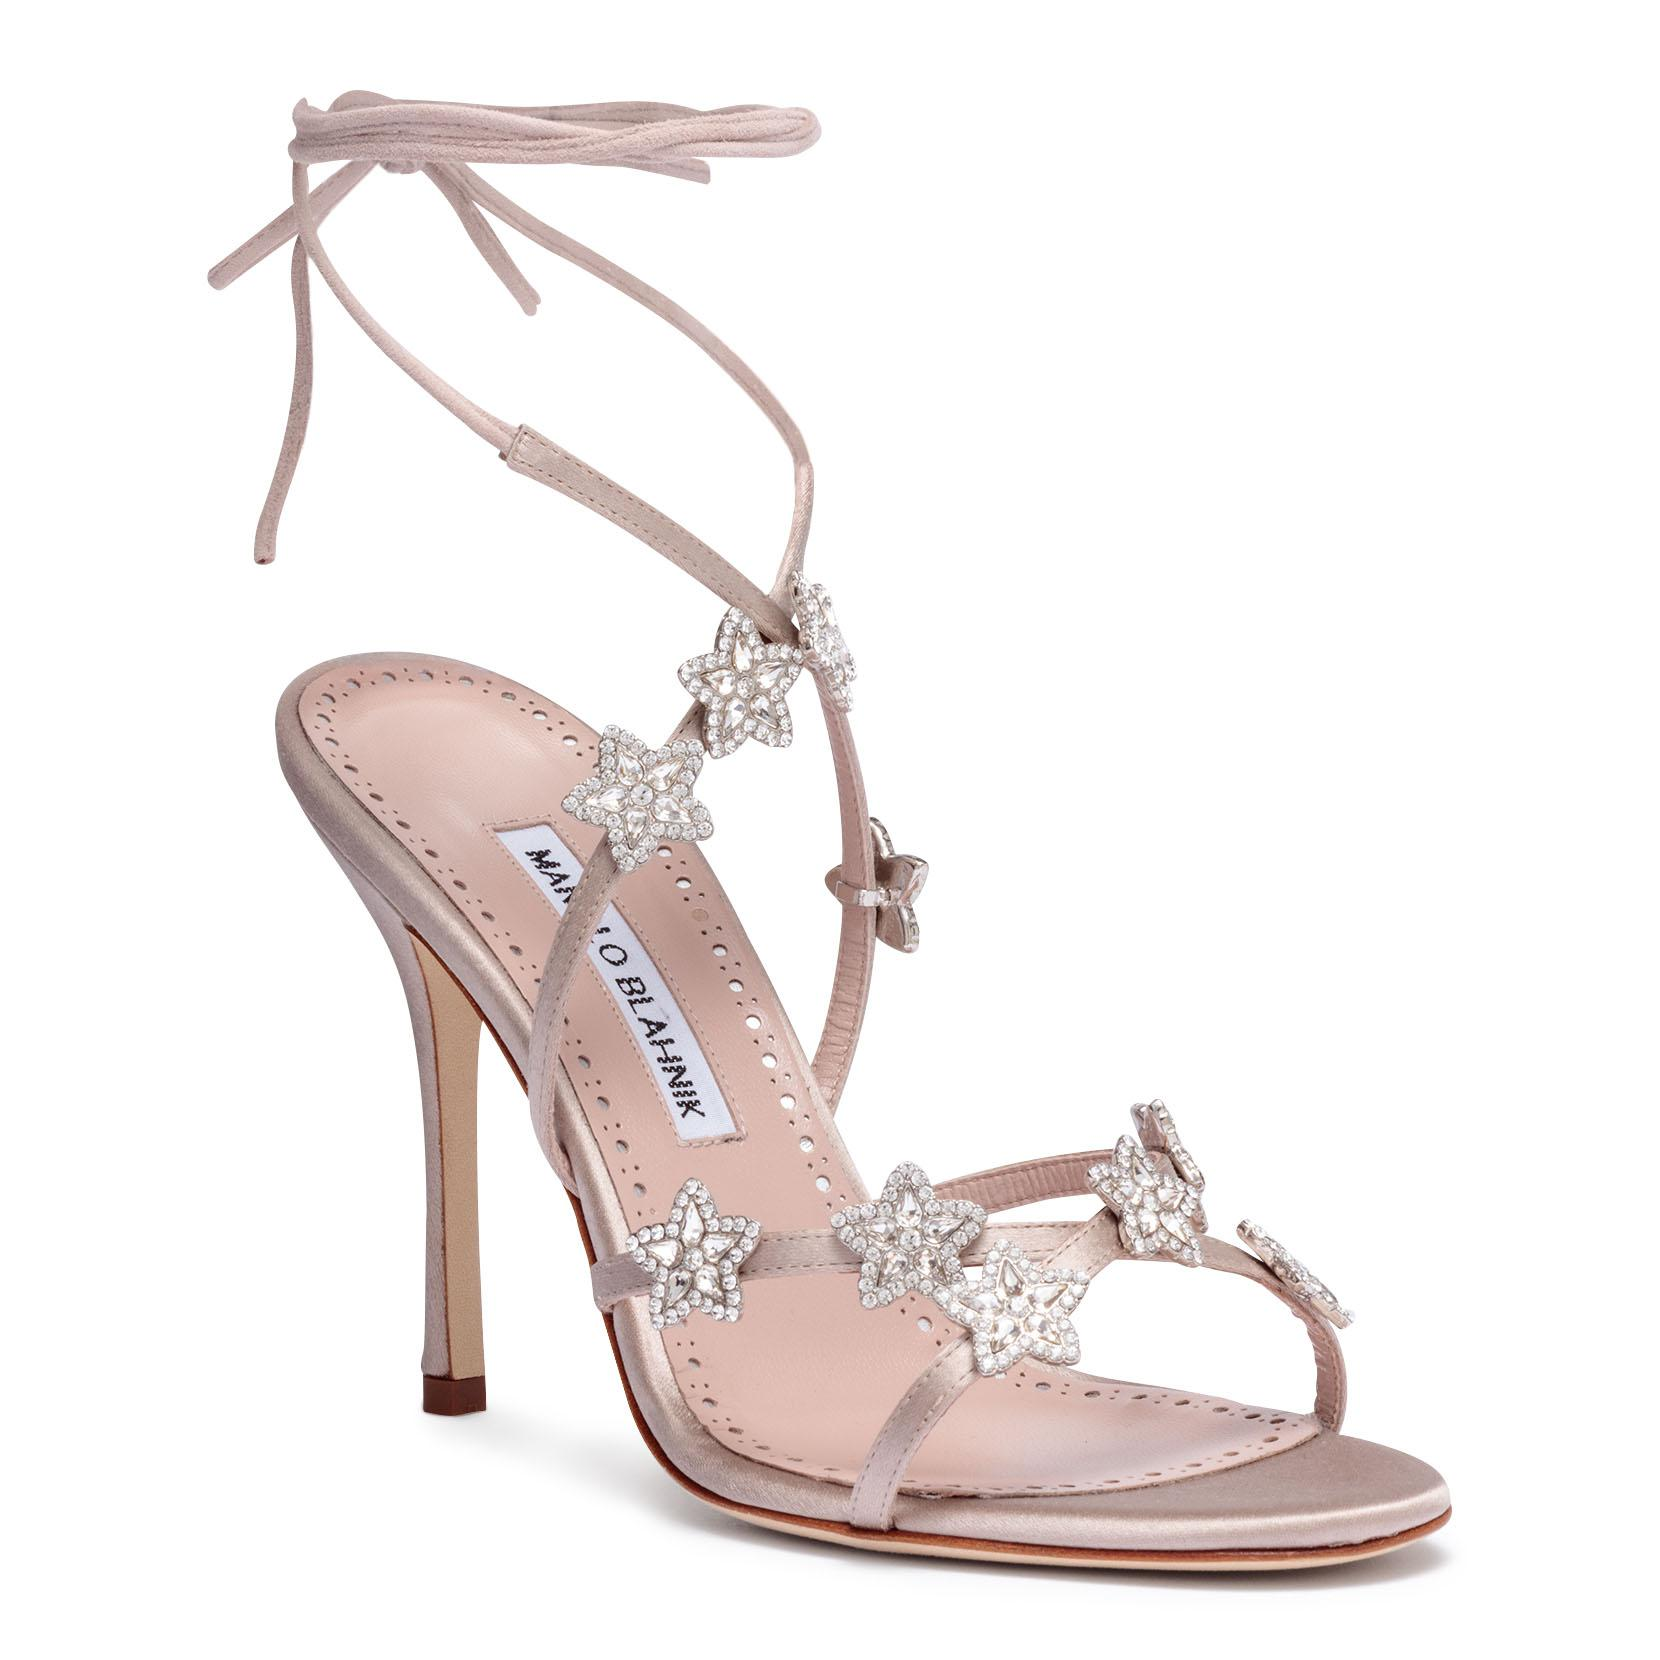 Discount Cost Osaka 105 champagne satin sandals Manolo Blahnik Buy Cheap Amazon Reliable Cheap Price Ost Release Dates Buy Cheap 100% Guaranteed eG5IO